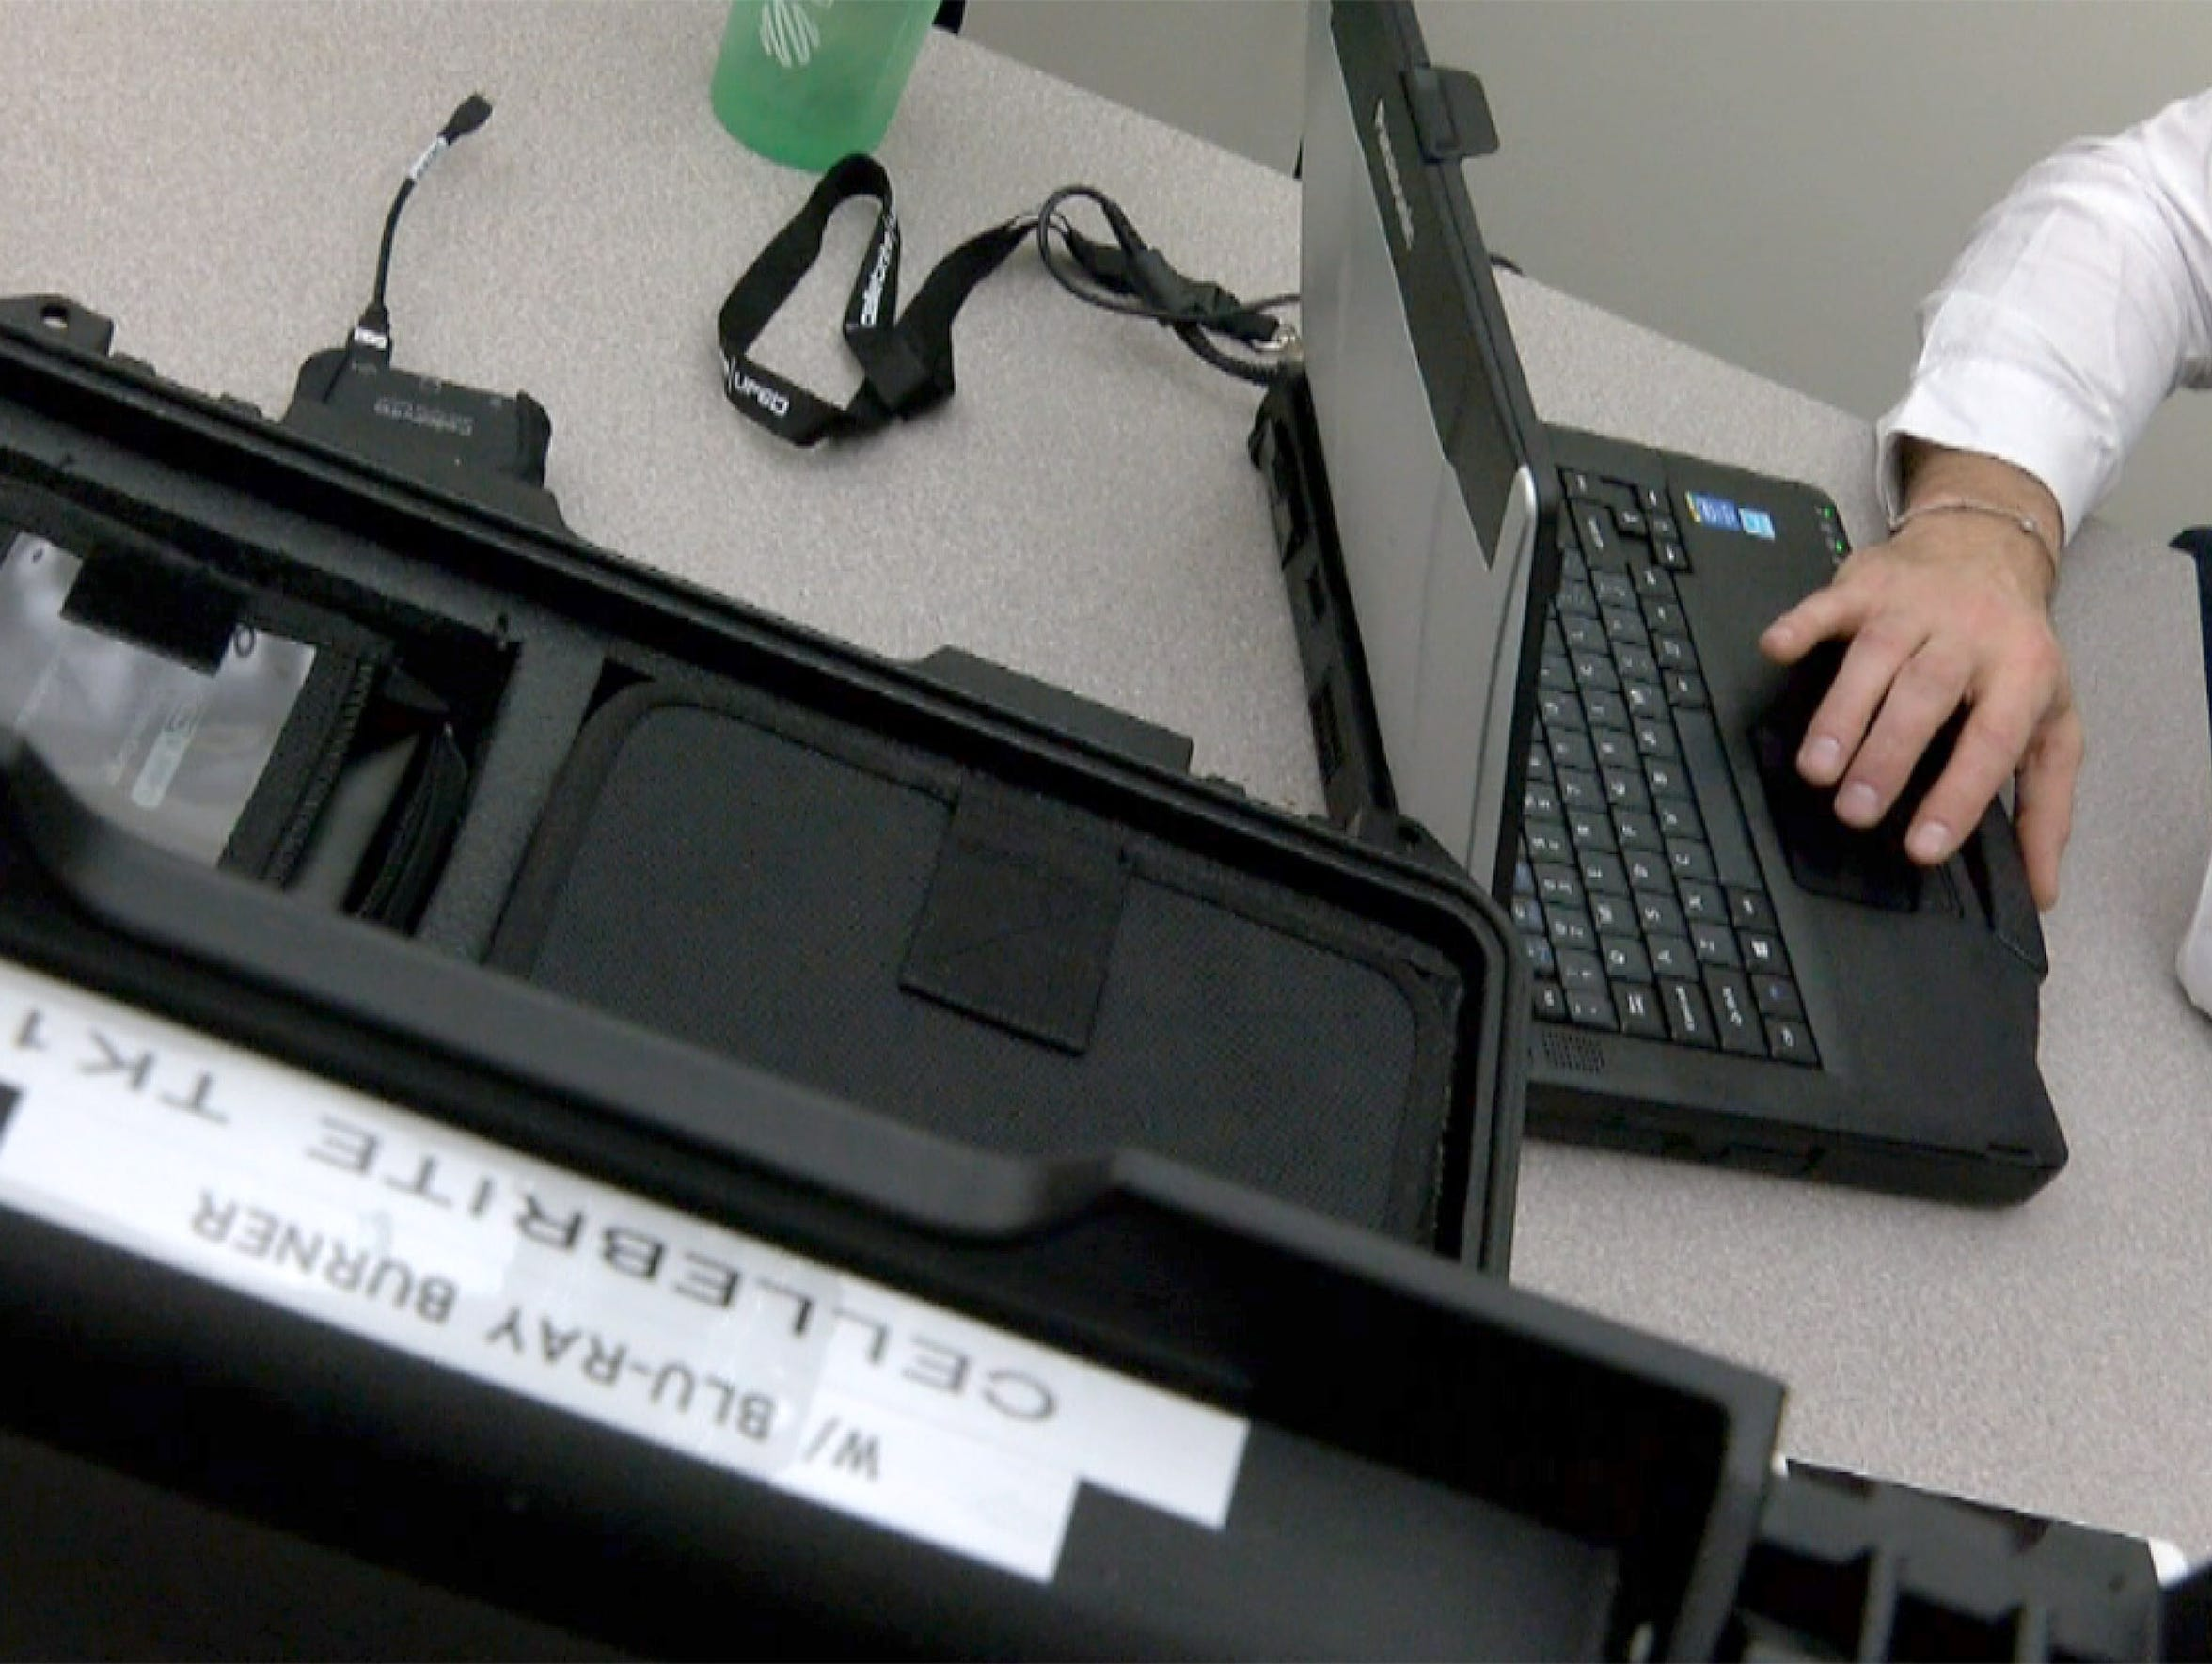 Detectives use the Cellebrite system to extract information